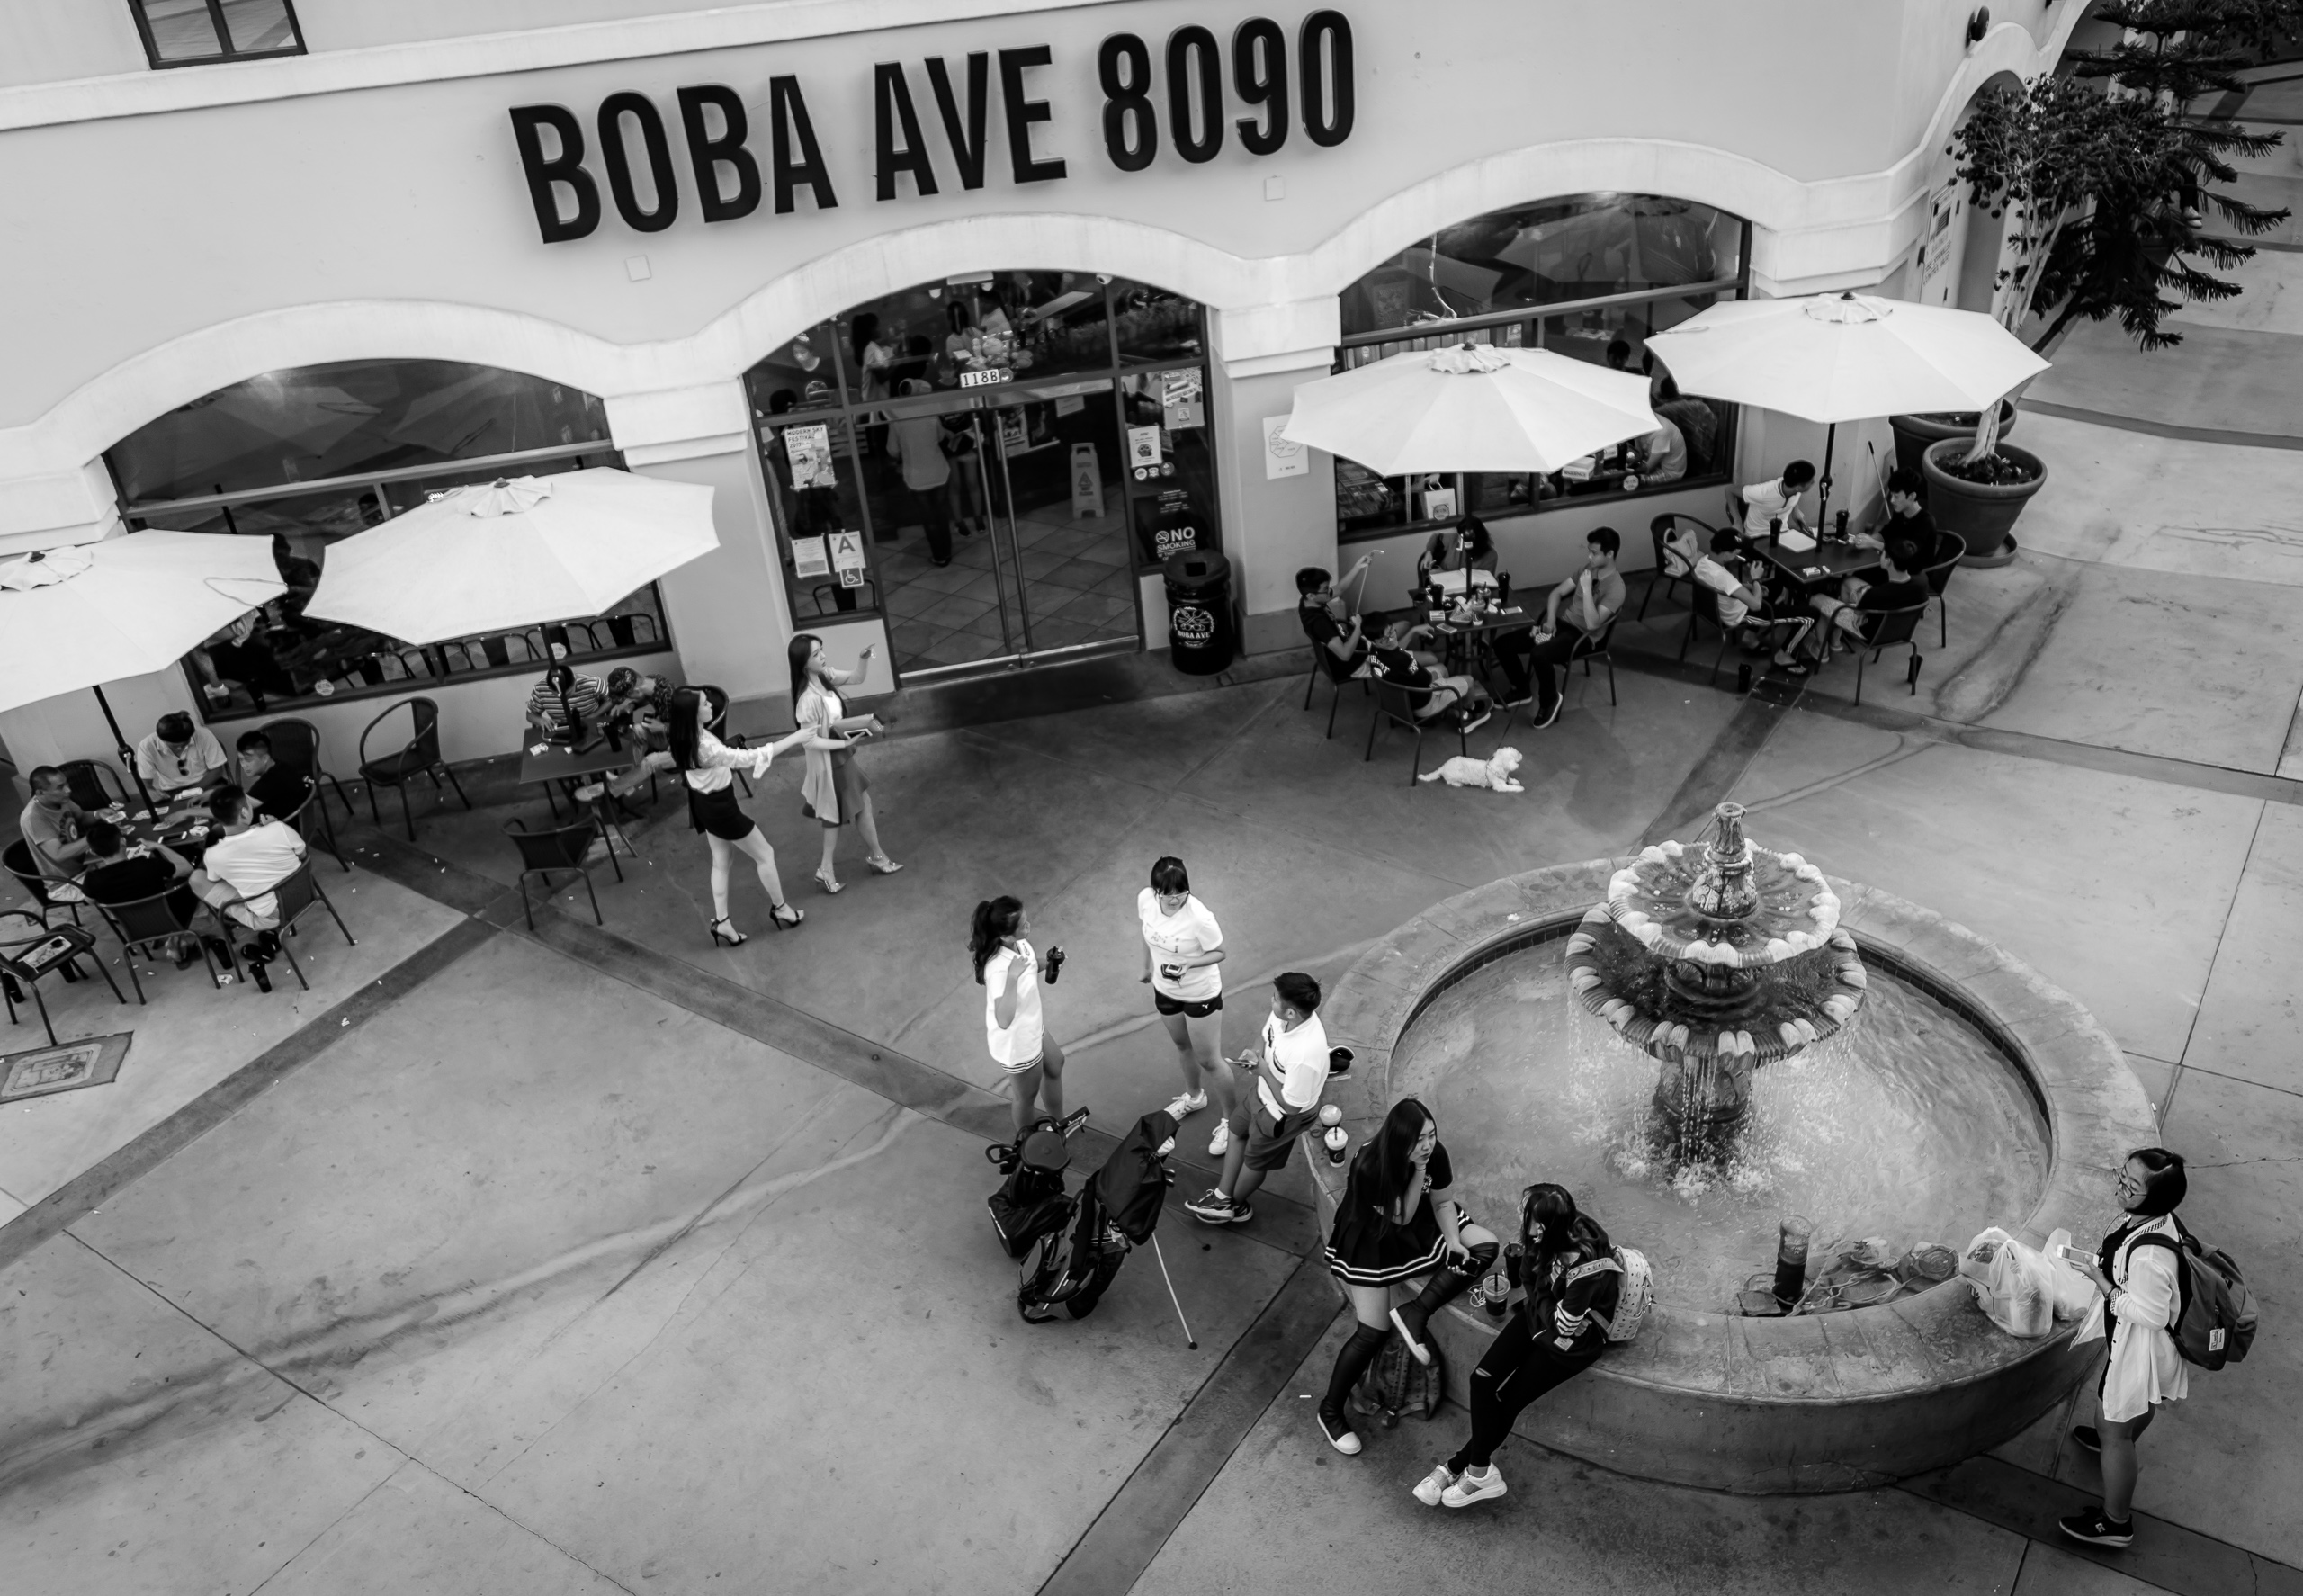 2nd story view looking down on the entrance to Boba Ave and showing the plaza in front with a fountain and people gathered at tables, the fountain, and walking around